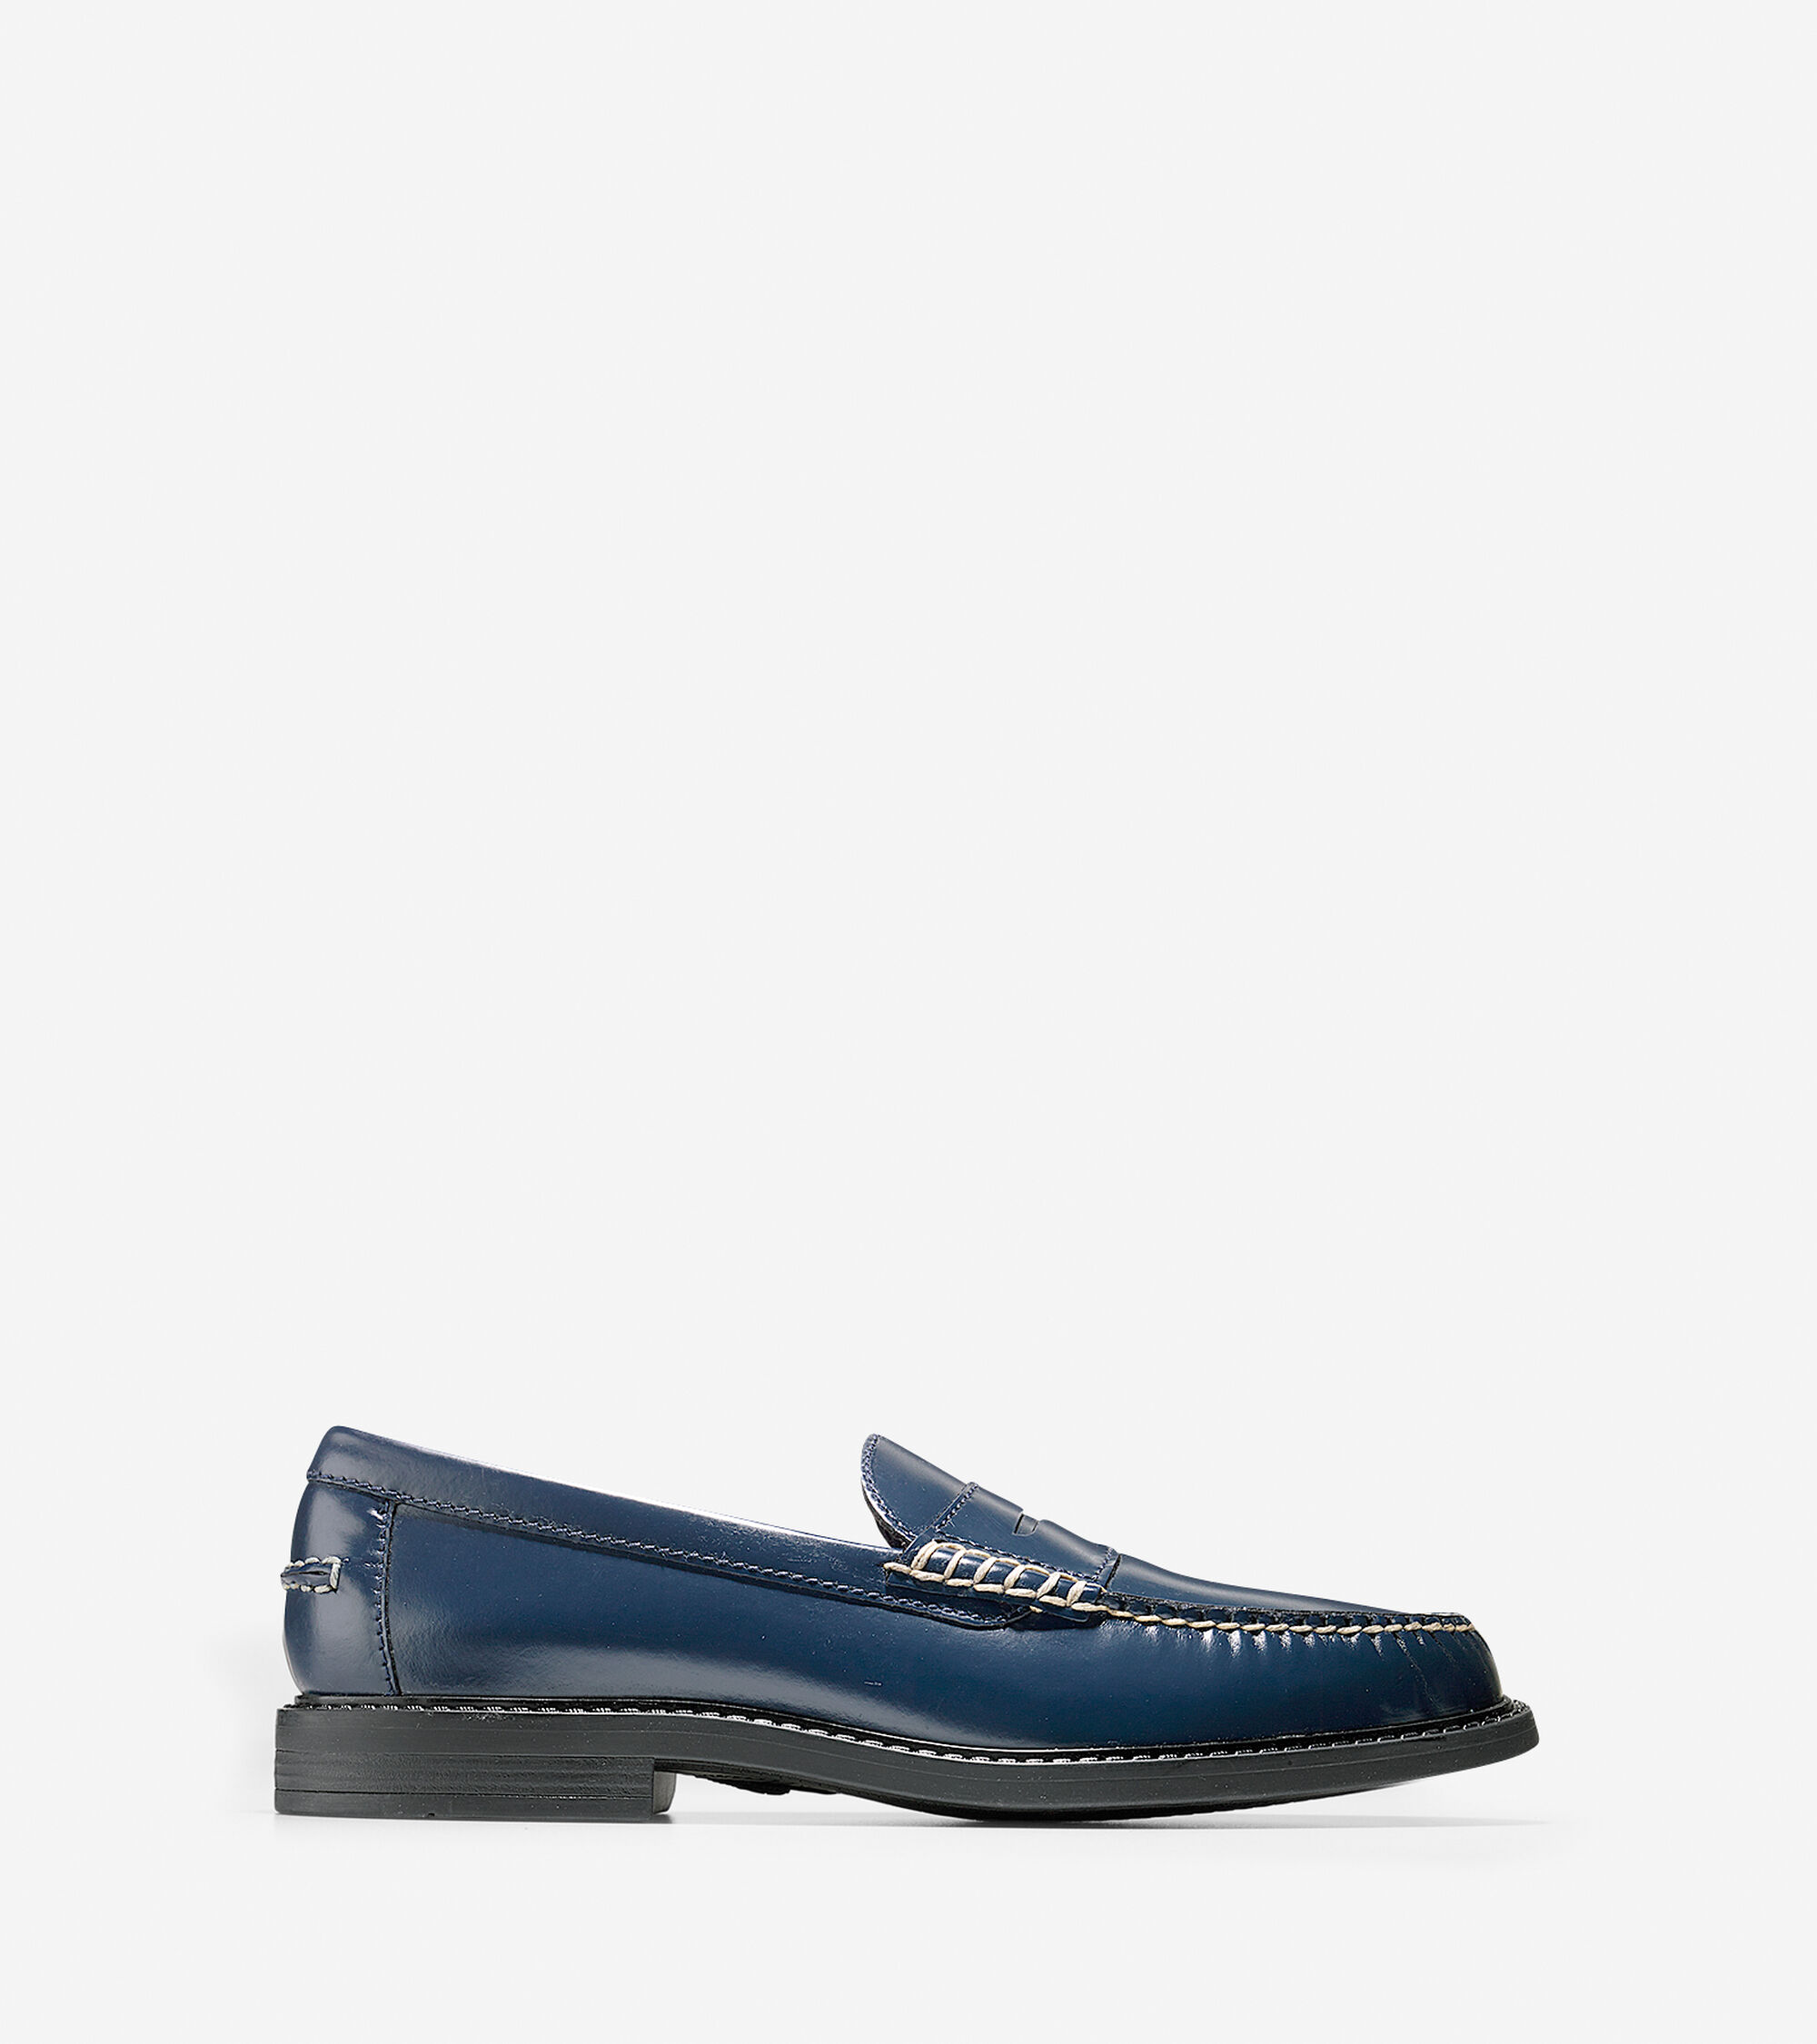 32ccc6abba7 Mens Pinch Campus Penny Loafers in Blazer Blue